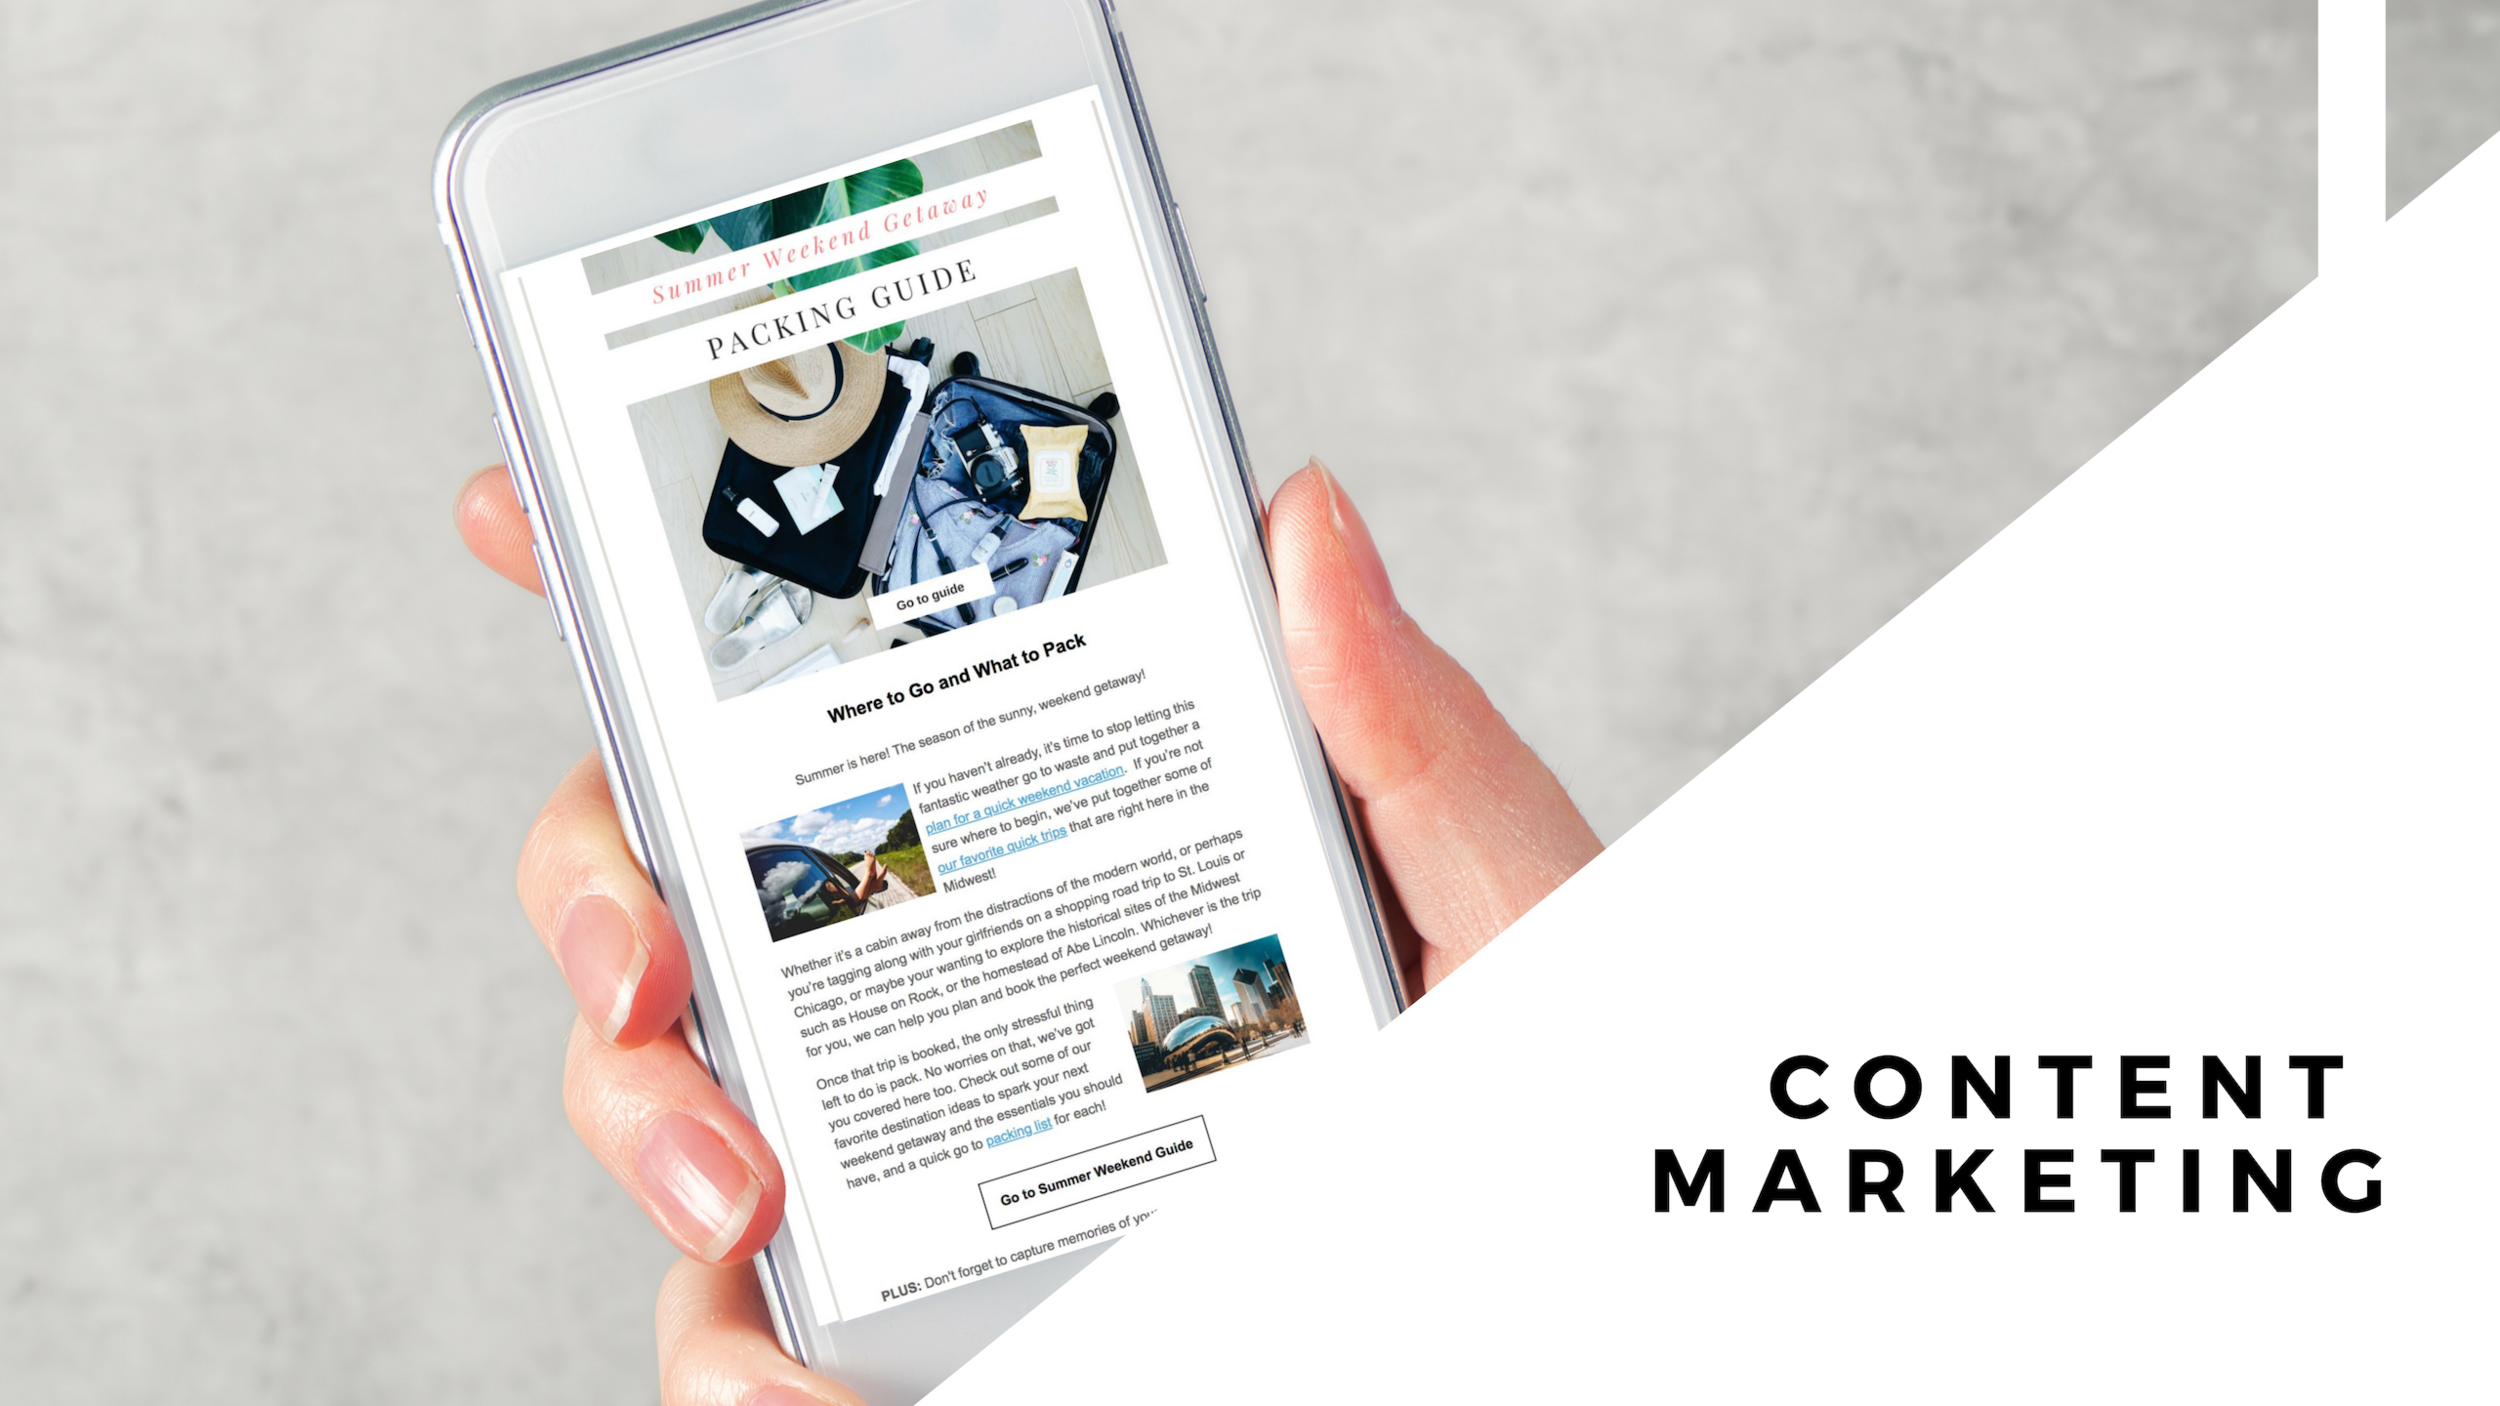 Content for people, optimized for search engines.  Using an inbound, integrated approach, we focus on building and leveraging remarkable content that aligns with your ideal customer.  · Blogs & vlogs · Video & photography · Infographics · E-books & whitepapers · E-newsletters & email marketing